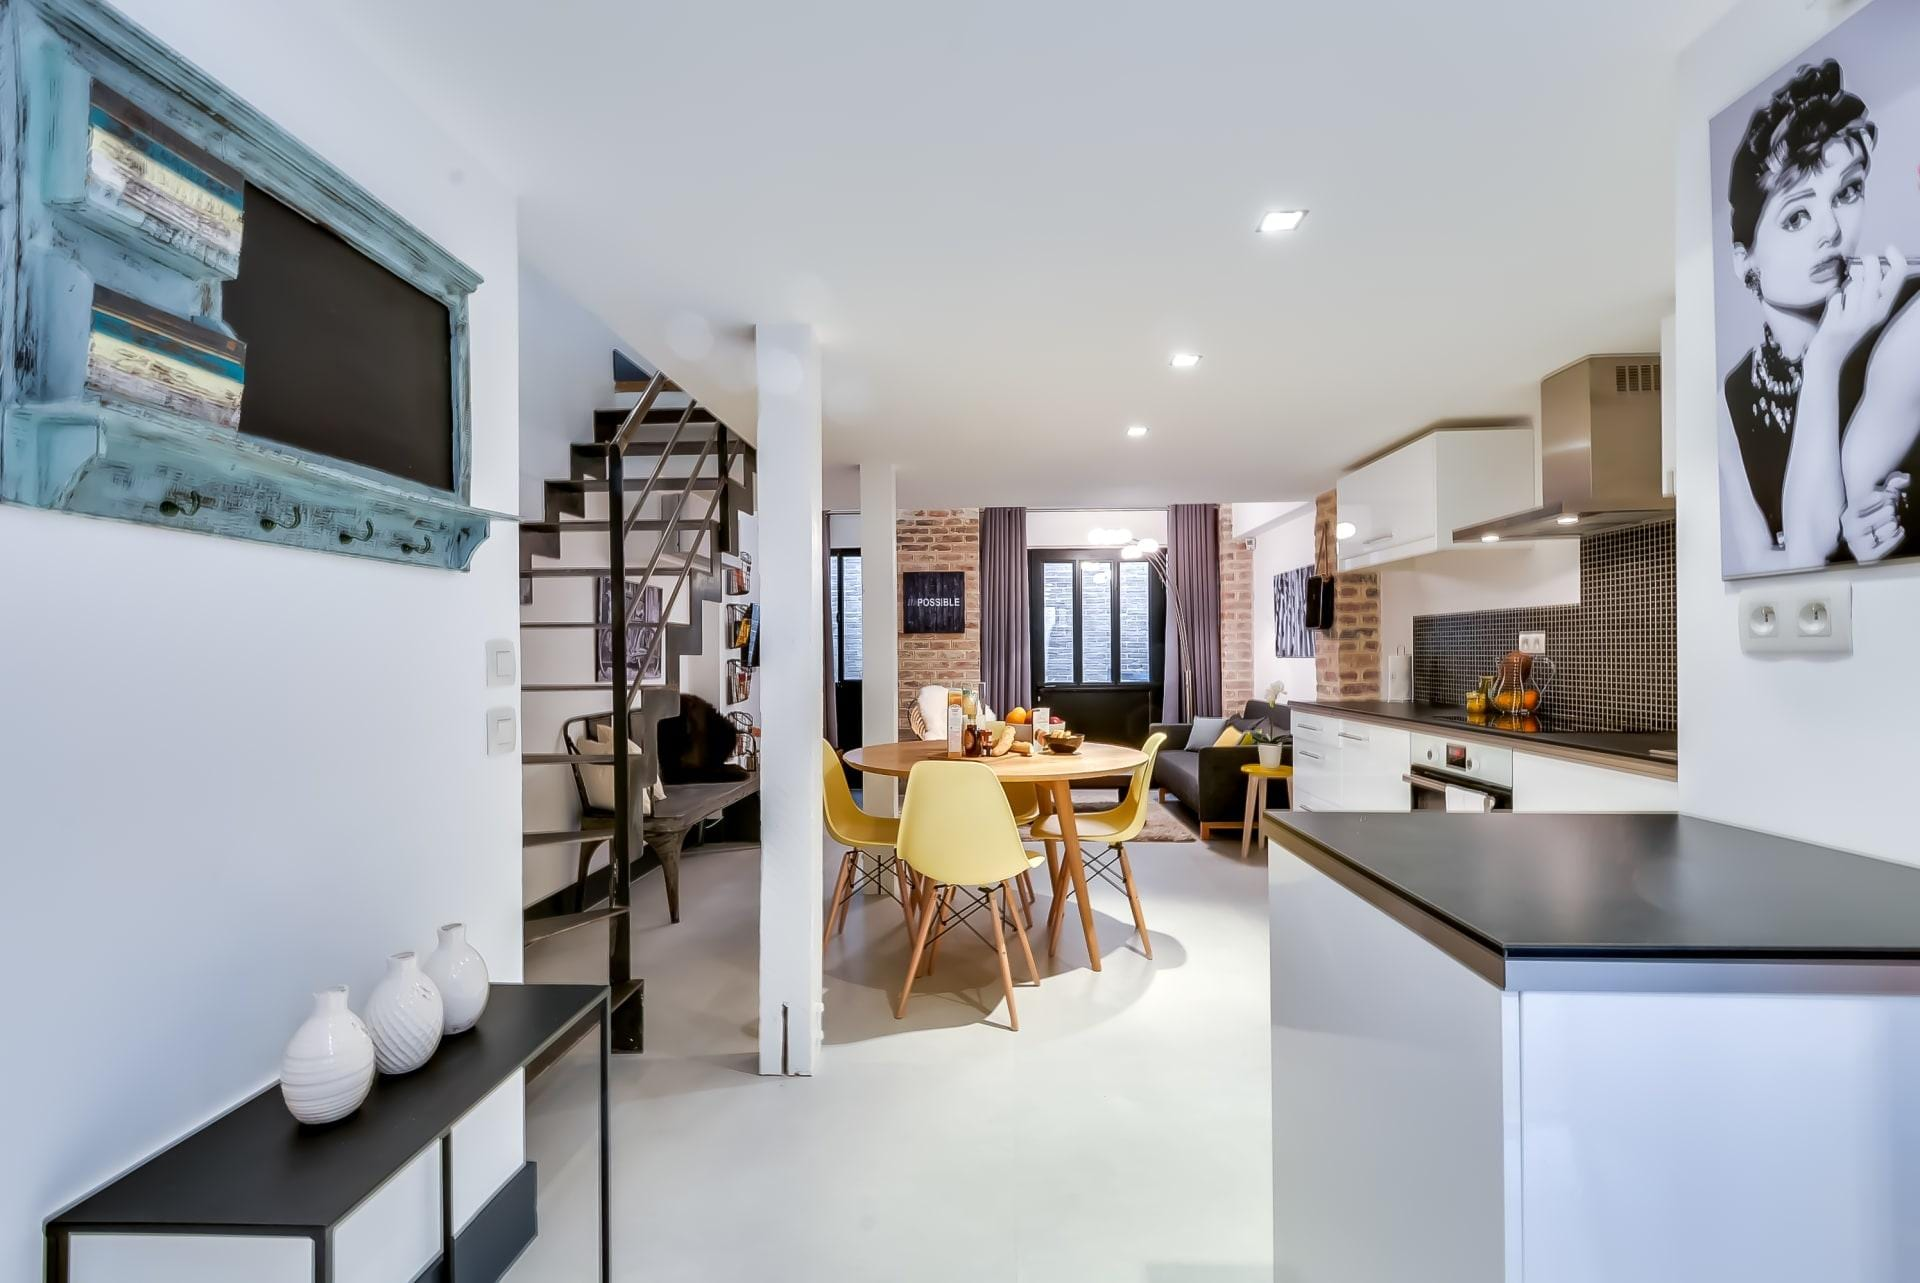 Property Image 2 - Two Bedroom Holiday Apartment in Montmartre near Metro Station